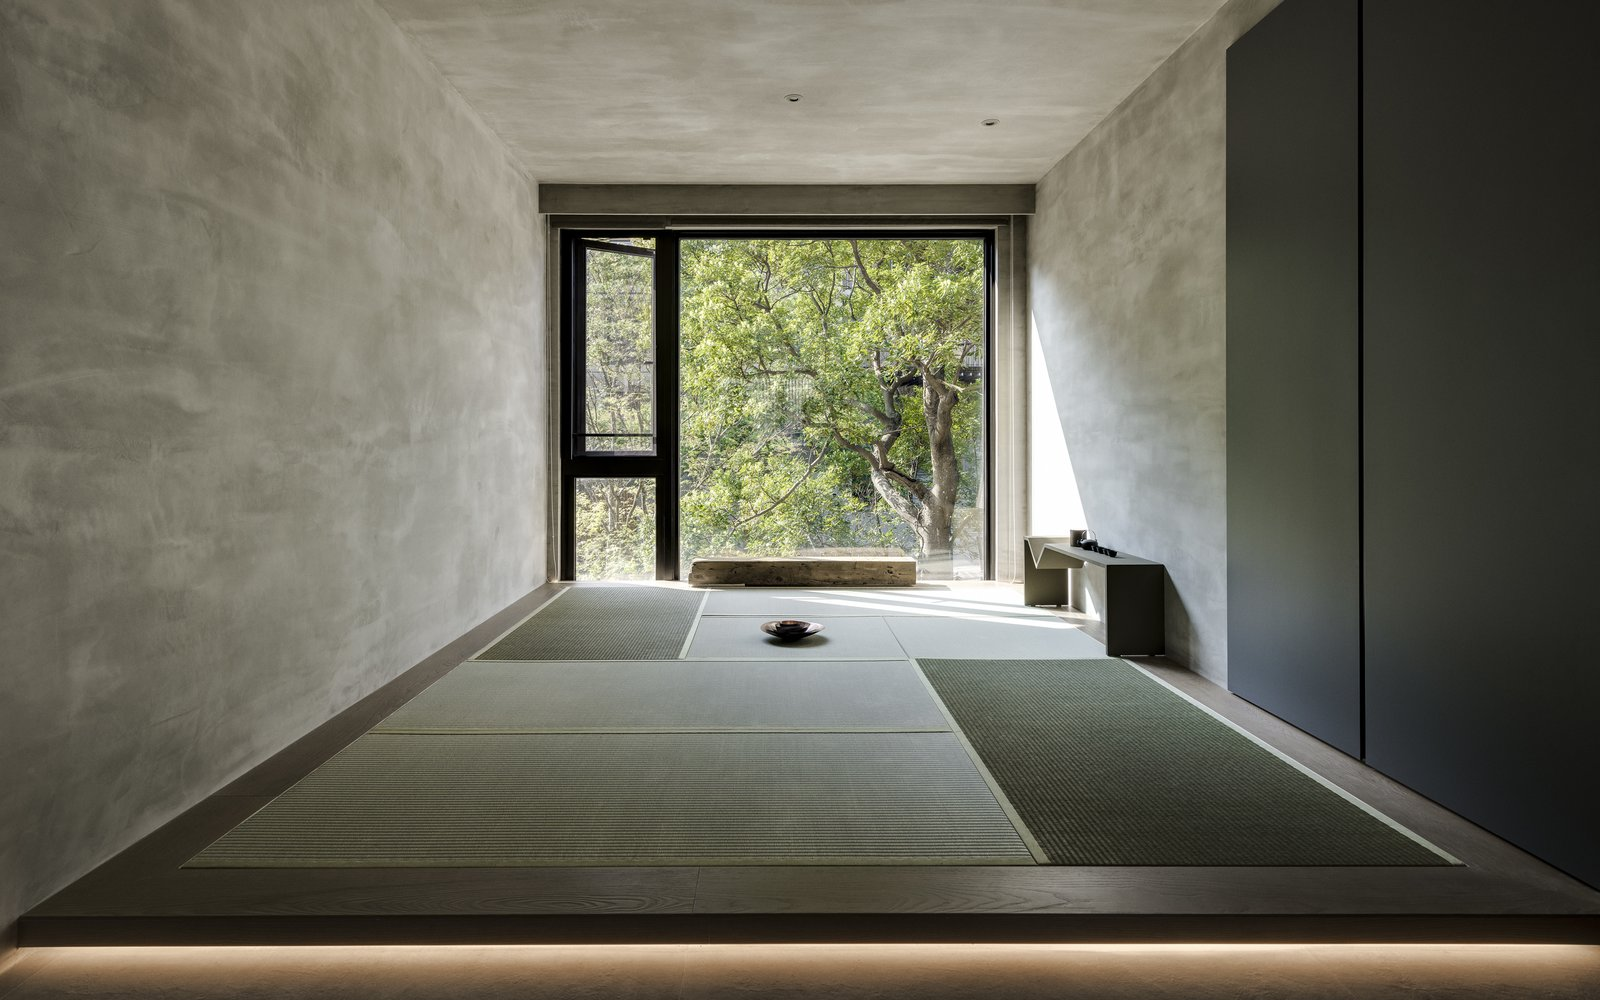 """Bedroom A """"watshitsu"""" room, which is used for meditation and tea drinking, has a fully glazed wall that looks out to the verdant trees beyond the apartment.       Photo 12 of 16 in A Couple Embrace Wabi-Sabi Design to Travel Back to the Past"""